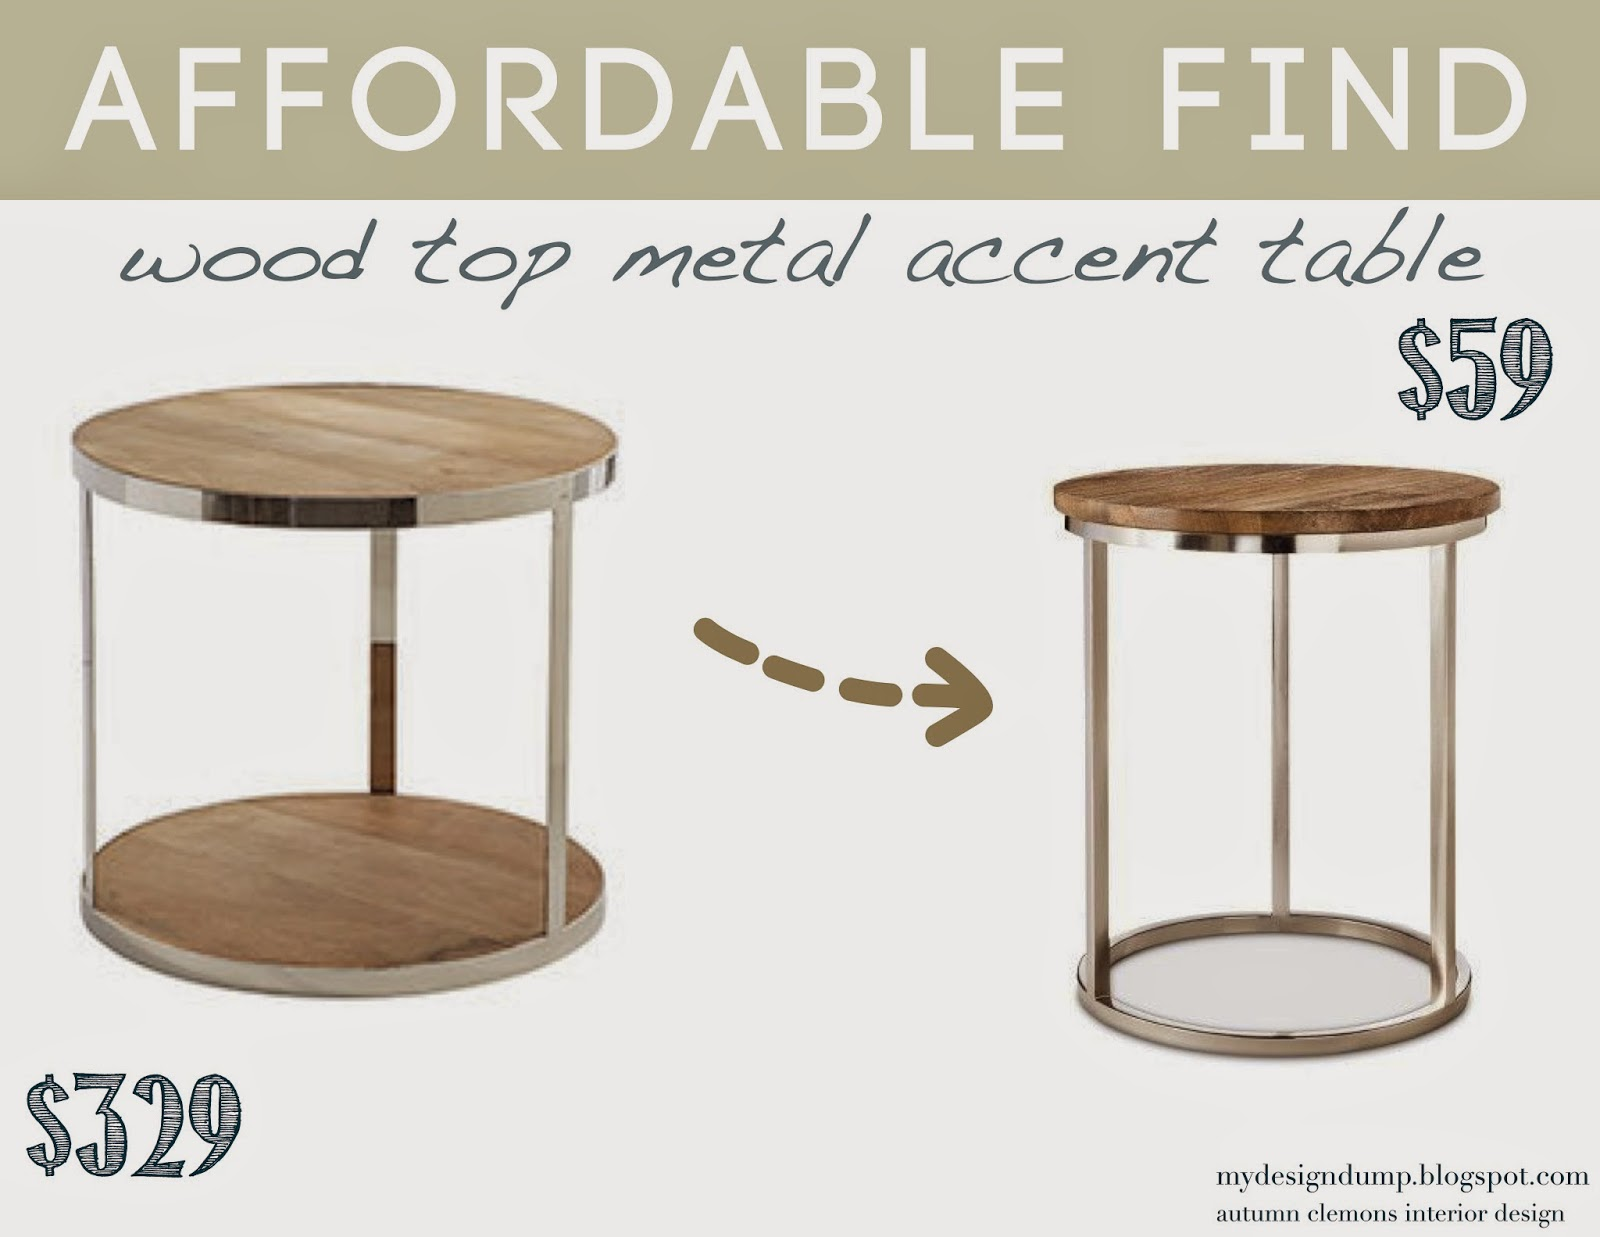 Cylinder Side Table $329 (currently On Sale For $279) Metal Accent Table  With Wood Top